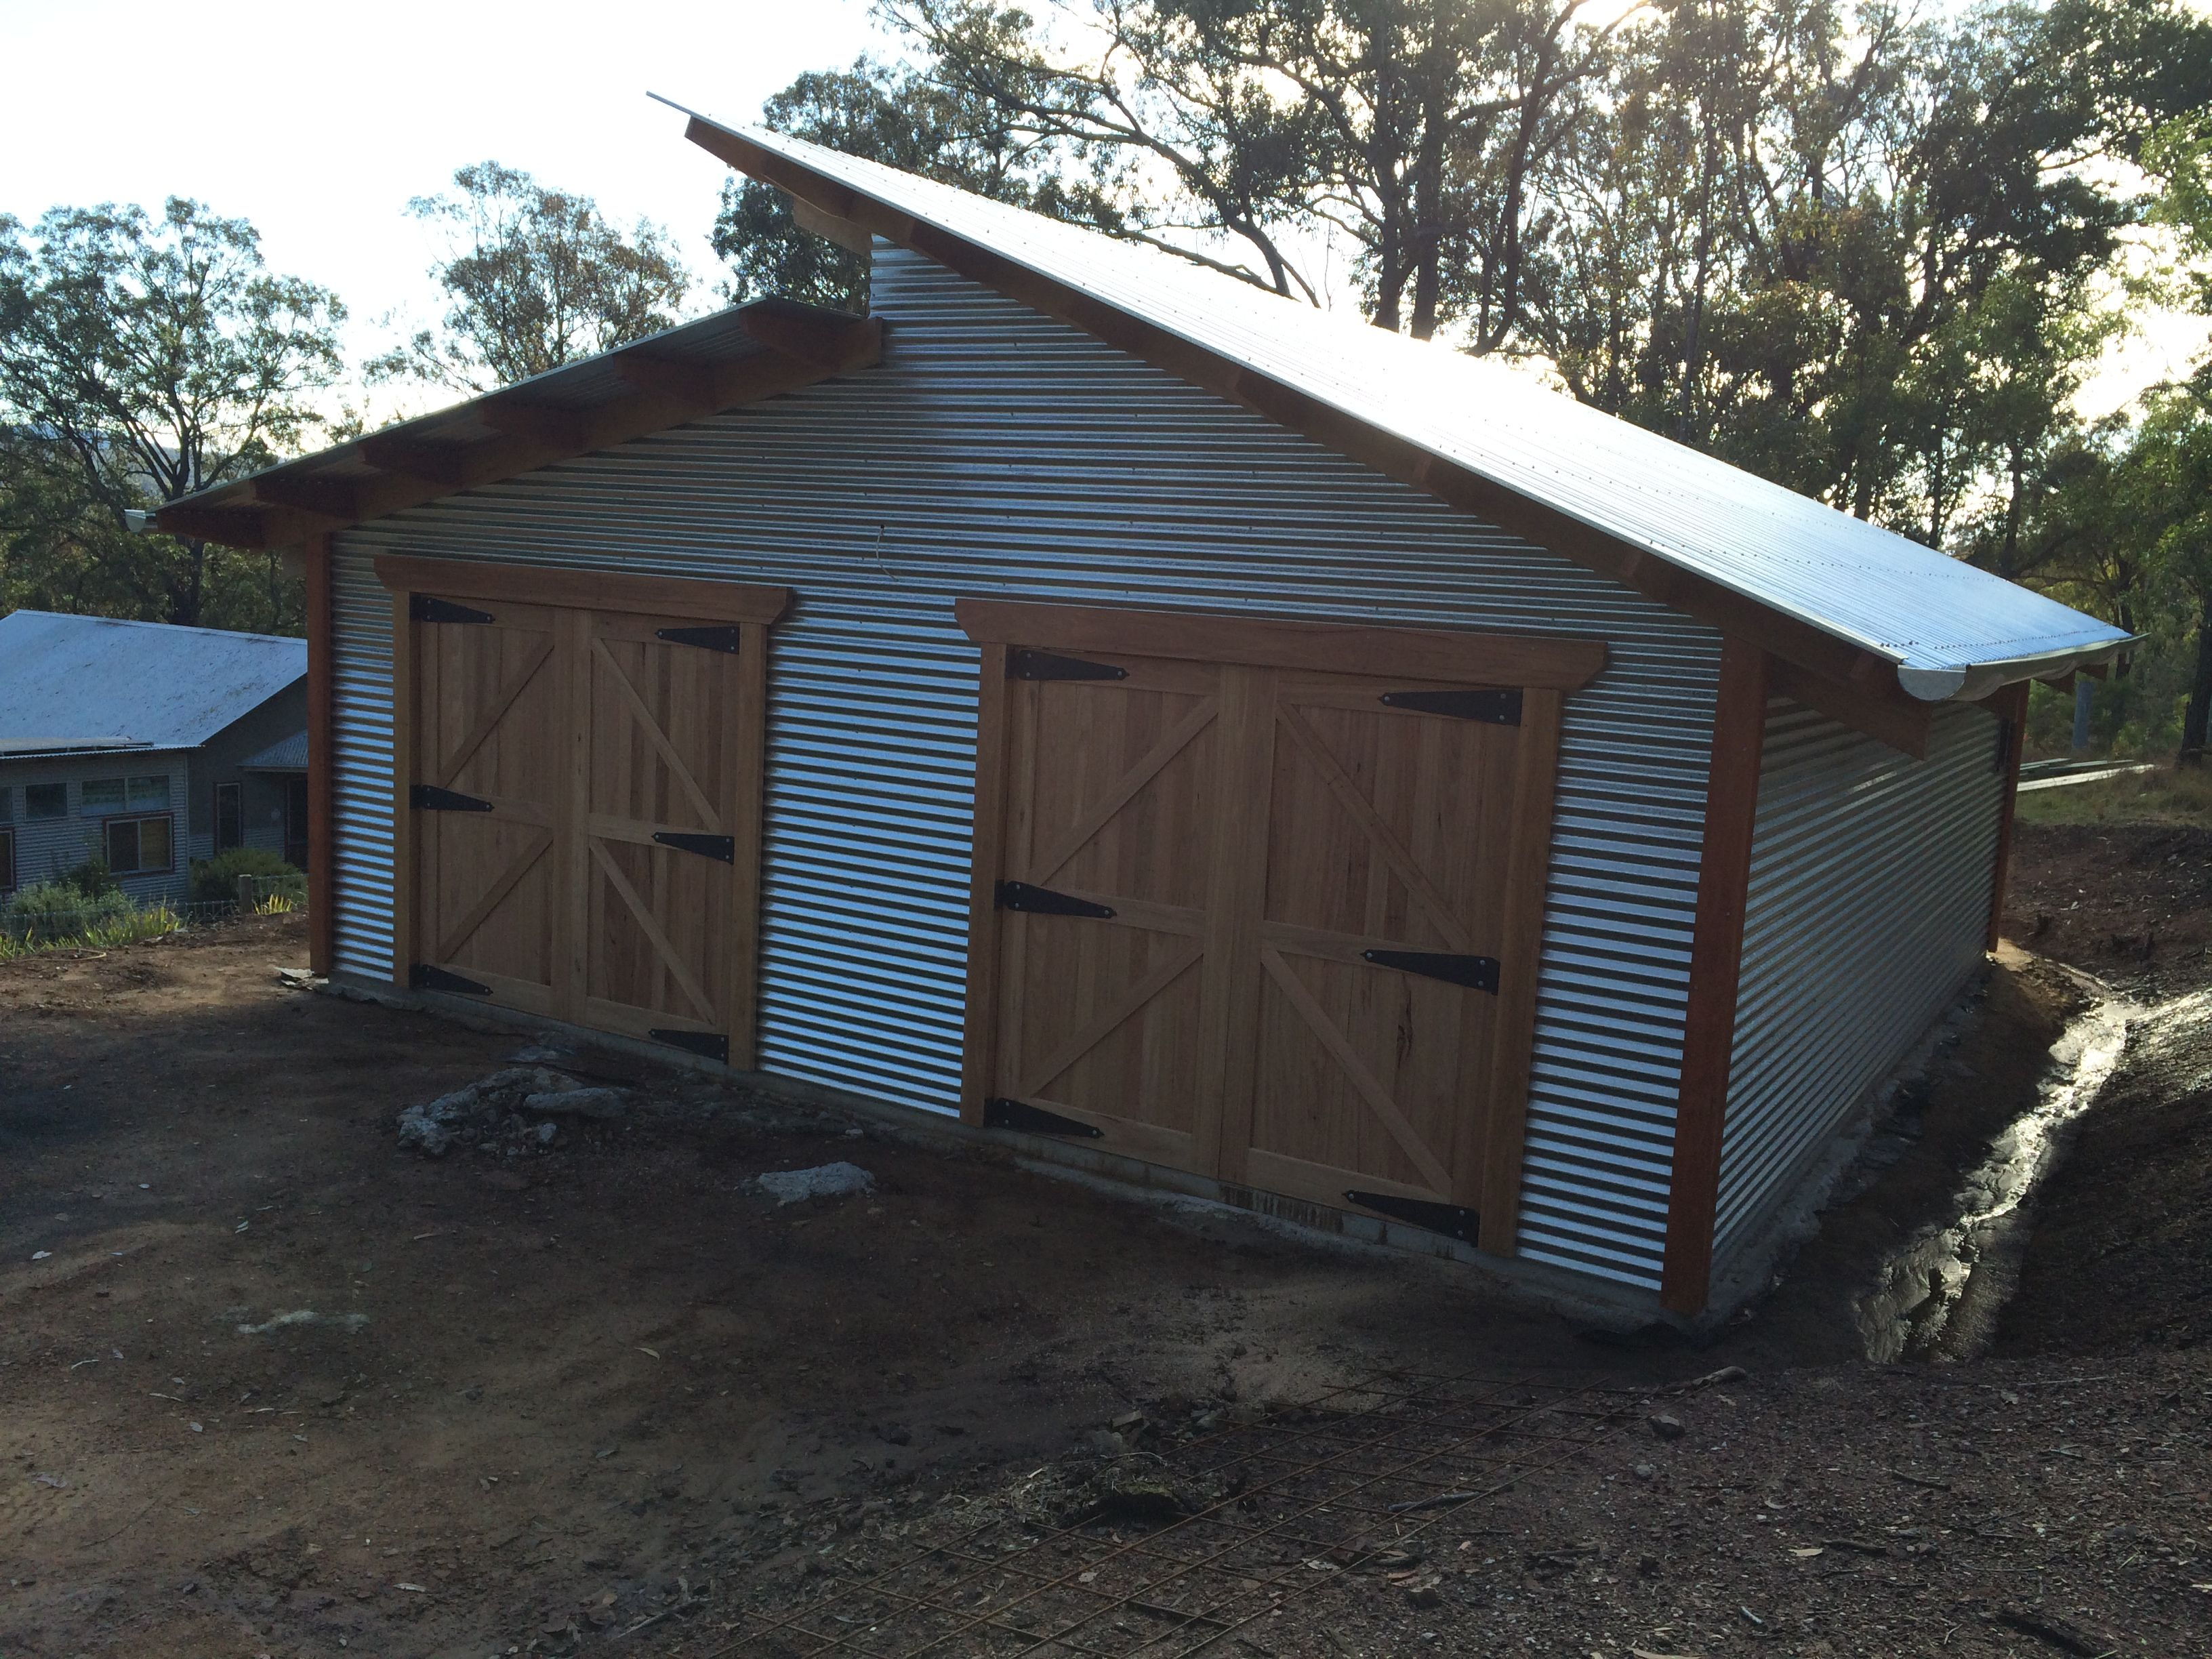 structures wood shed siding with mini brown horizon storage sheds barn painted